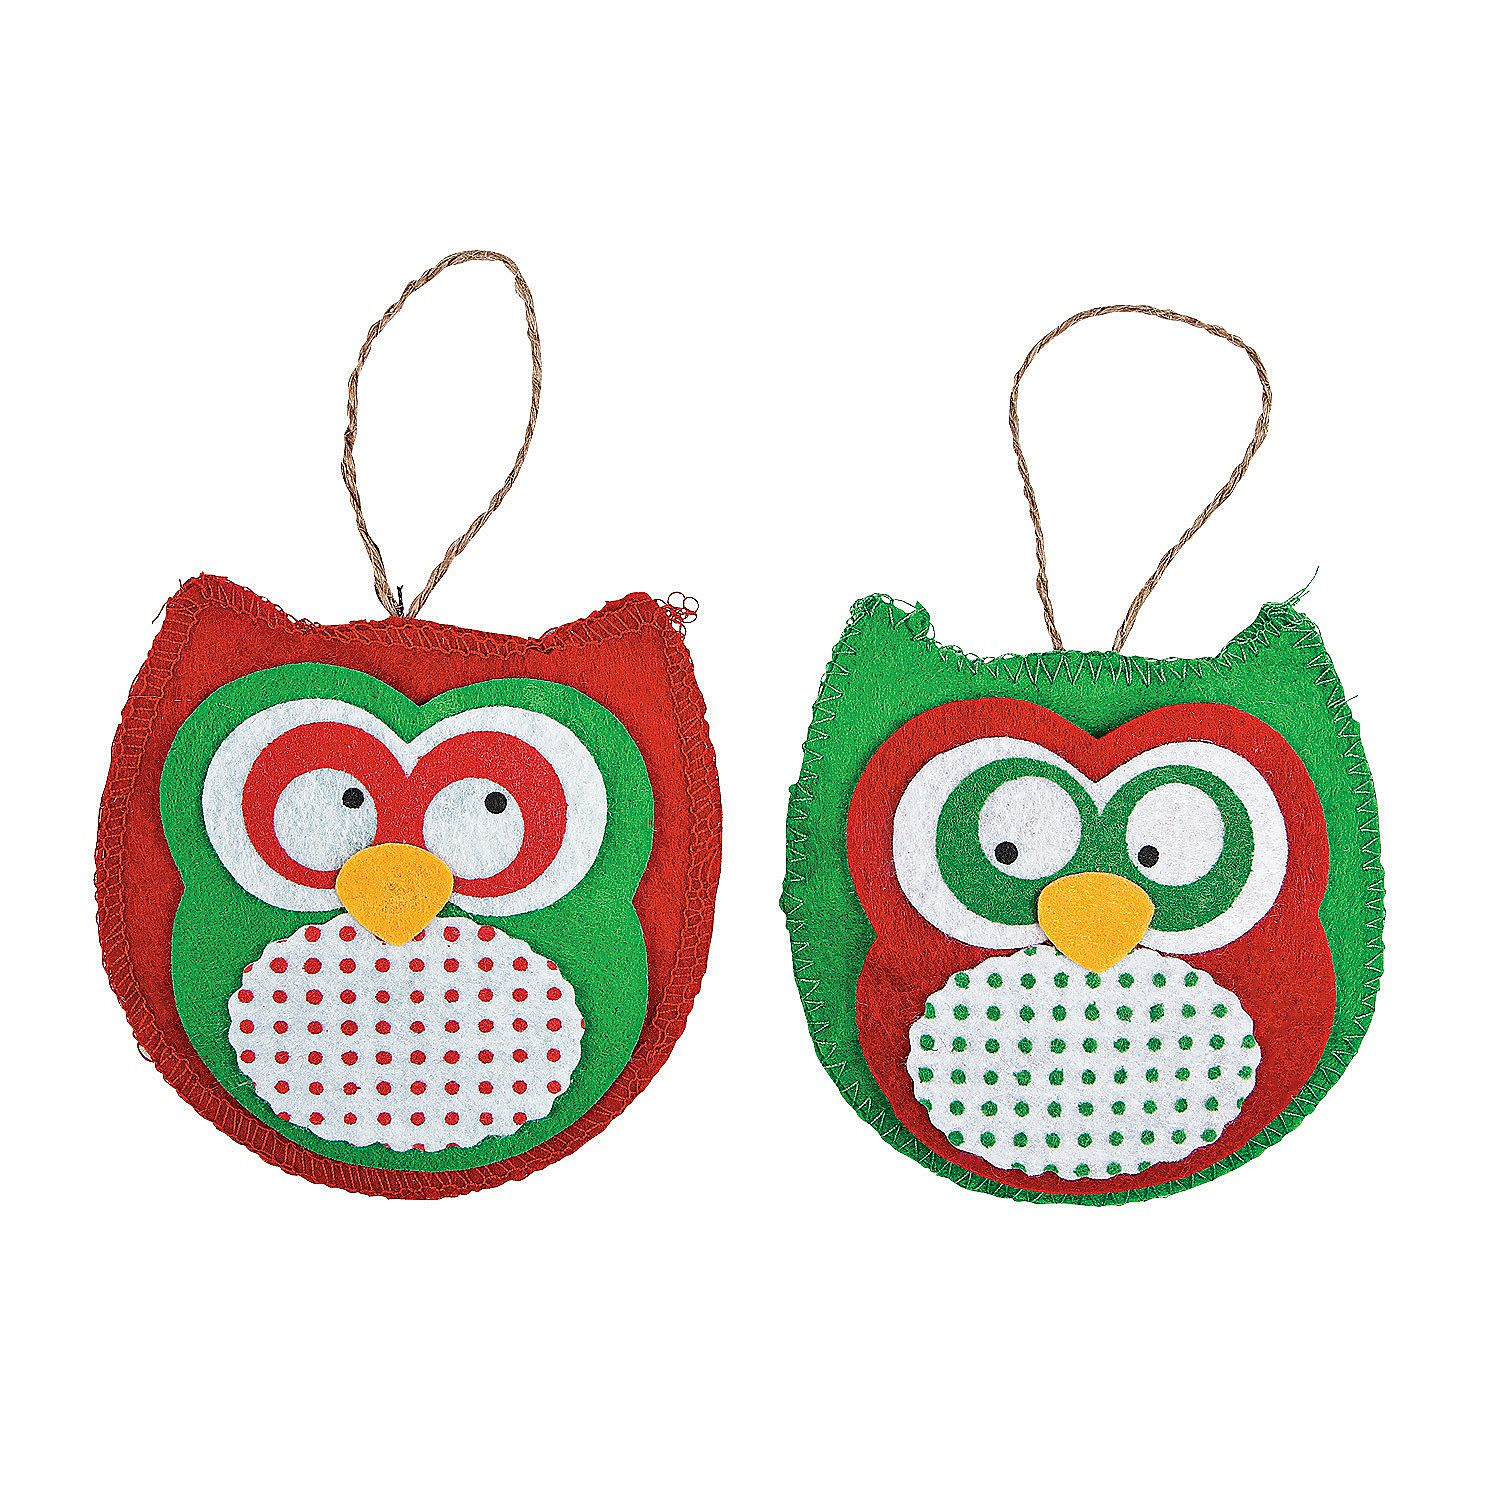 Christmas ornament craft kit - Red Green Owl Christmas Ornament Craft Kit Orientaltrading Com